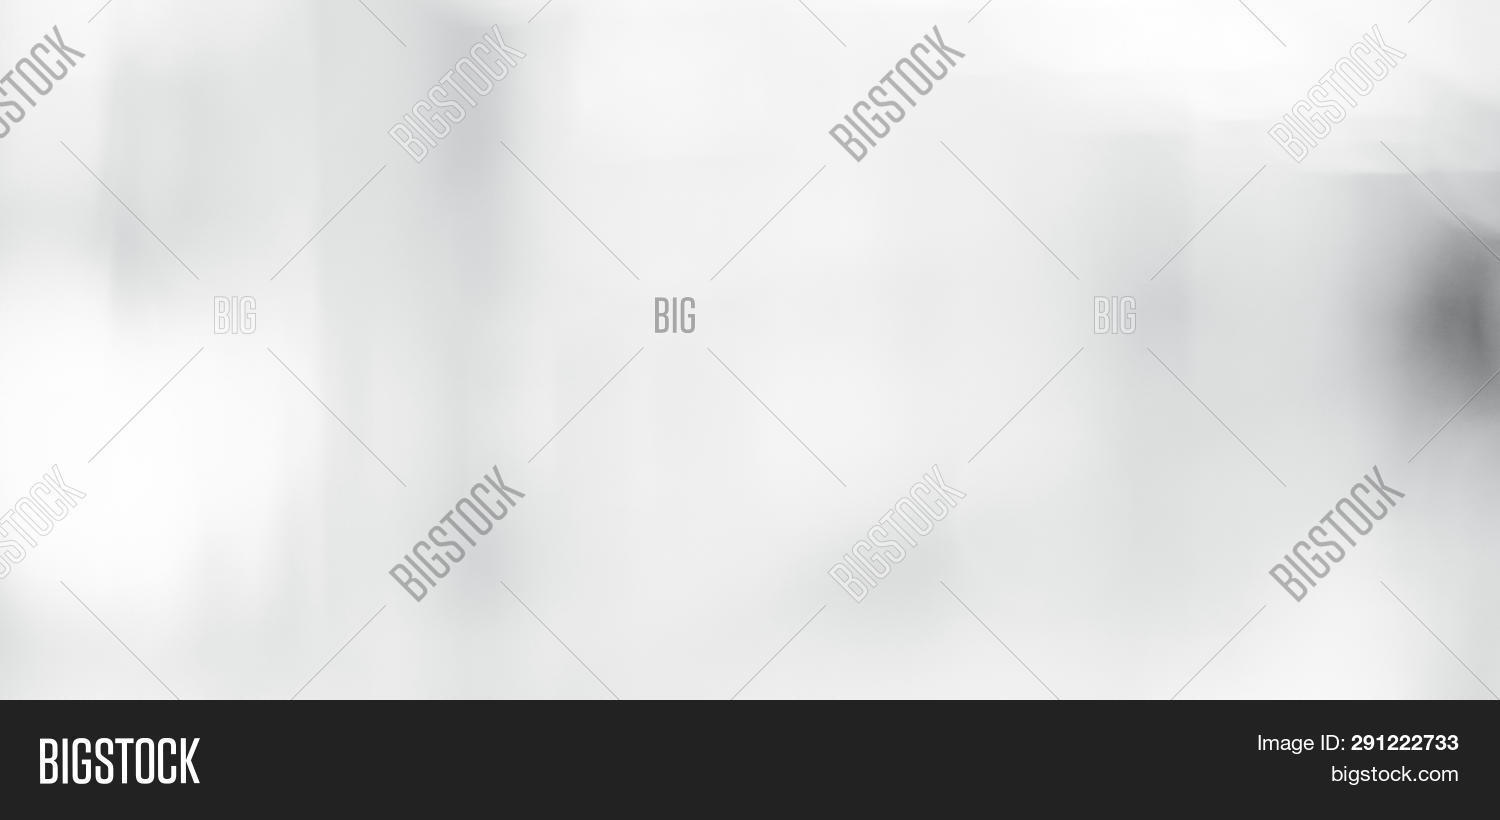 abstract,architecture,art,backdrop,background,banner,blank,blur,blurred,blurry,bokeh,bright,building,business,clean,color,corridor,cover,decoration,design,empty,gaussian,gradient,graphic,gray,grey,hallway,hospital,interior,light,mall,modern,office,pattern,simple,space,texture,wallpaper,website,white